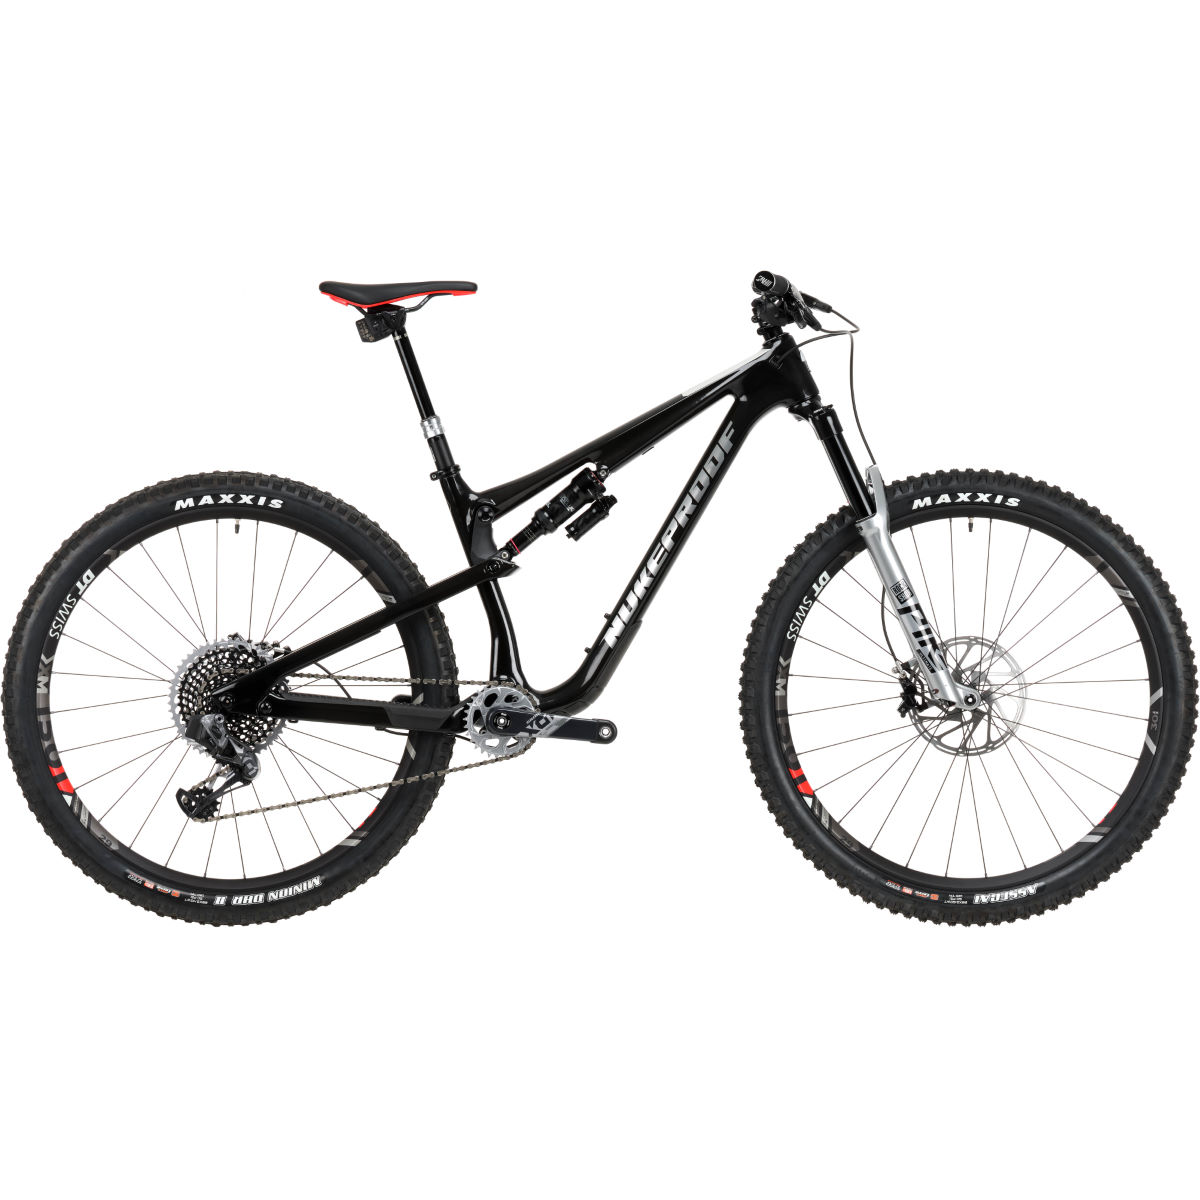 Nukeproof Nukeproof Reactor 290 WORX Bike Carbon (AXS EAGLE - 2020)   Full Suspension Mountain Bikes